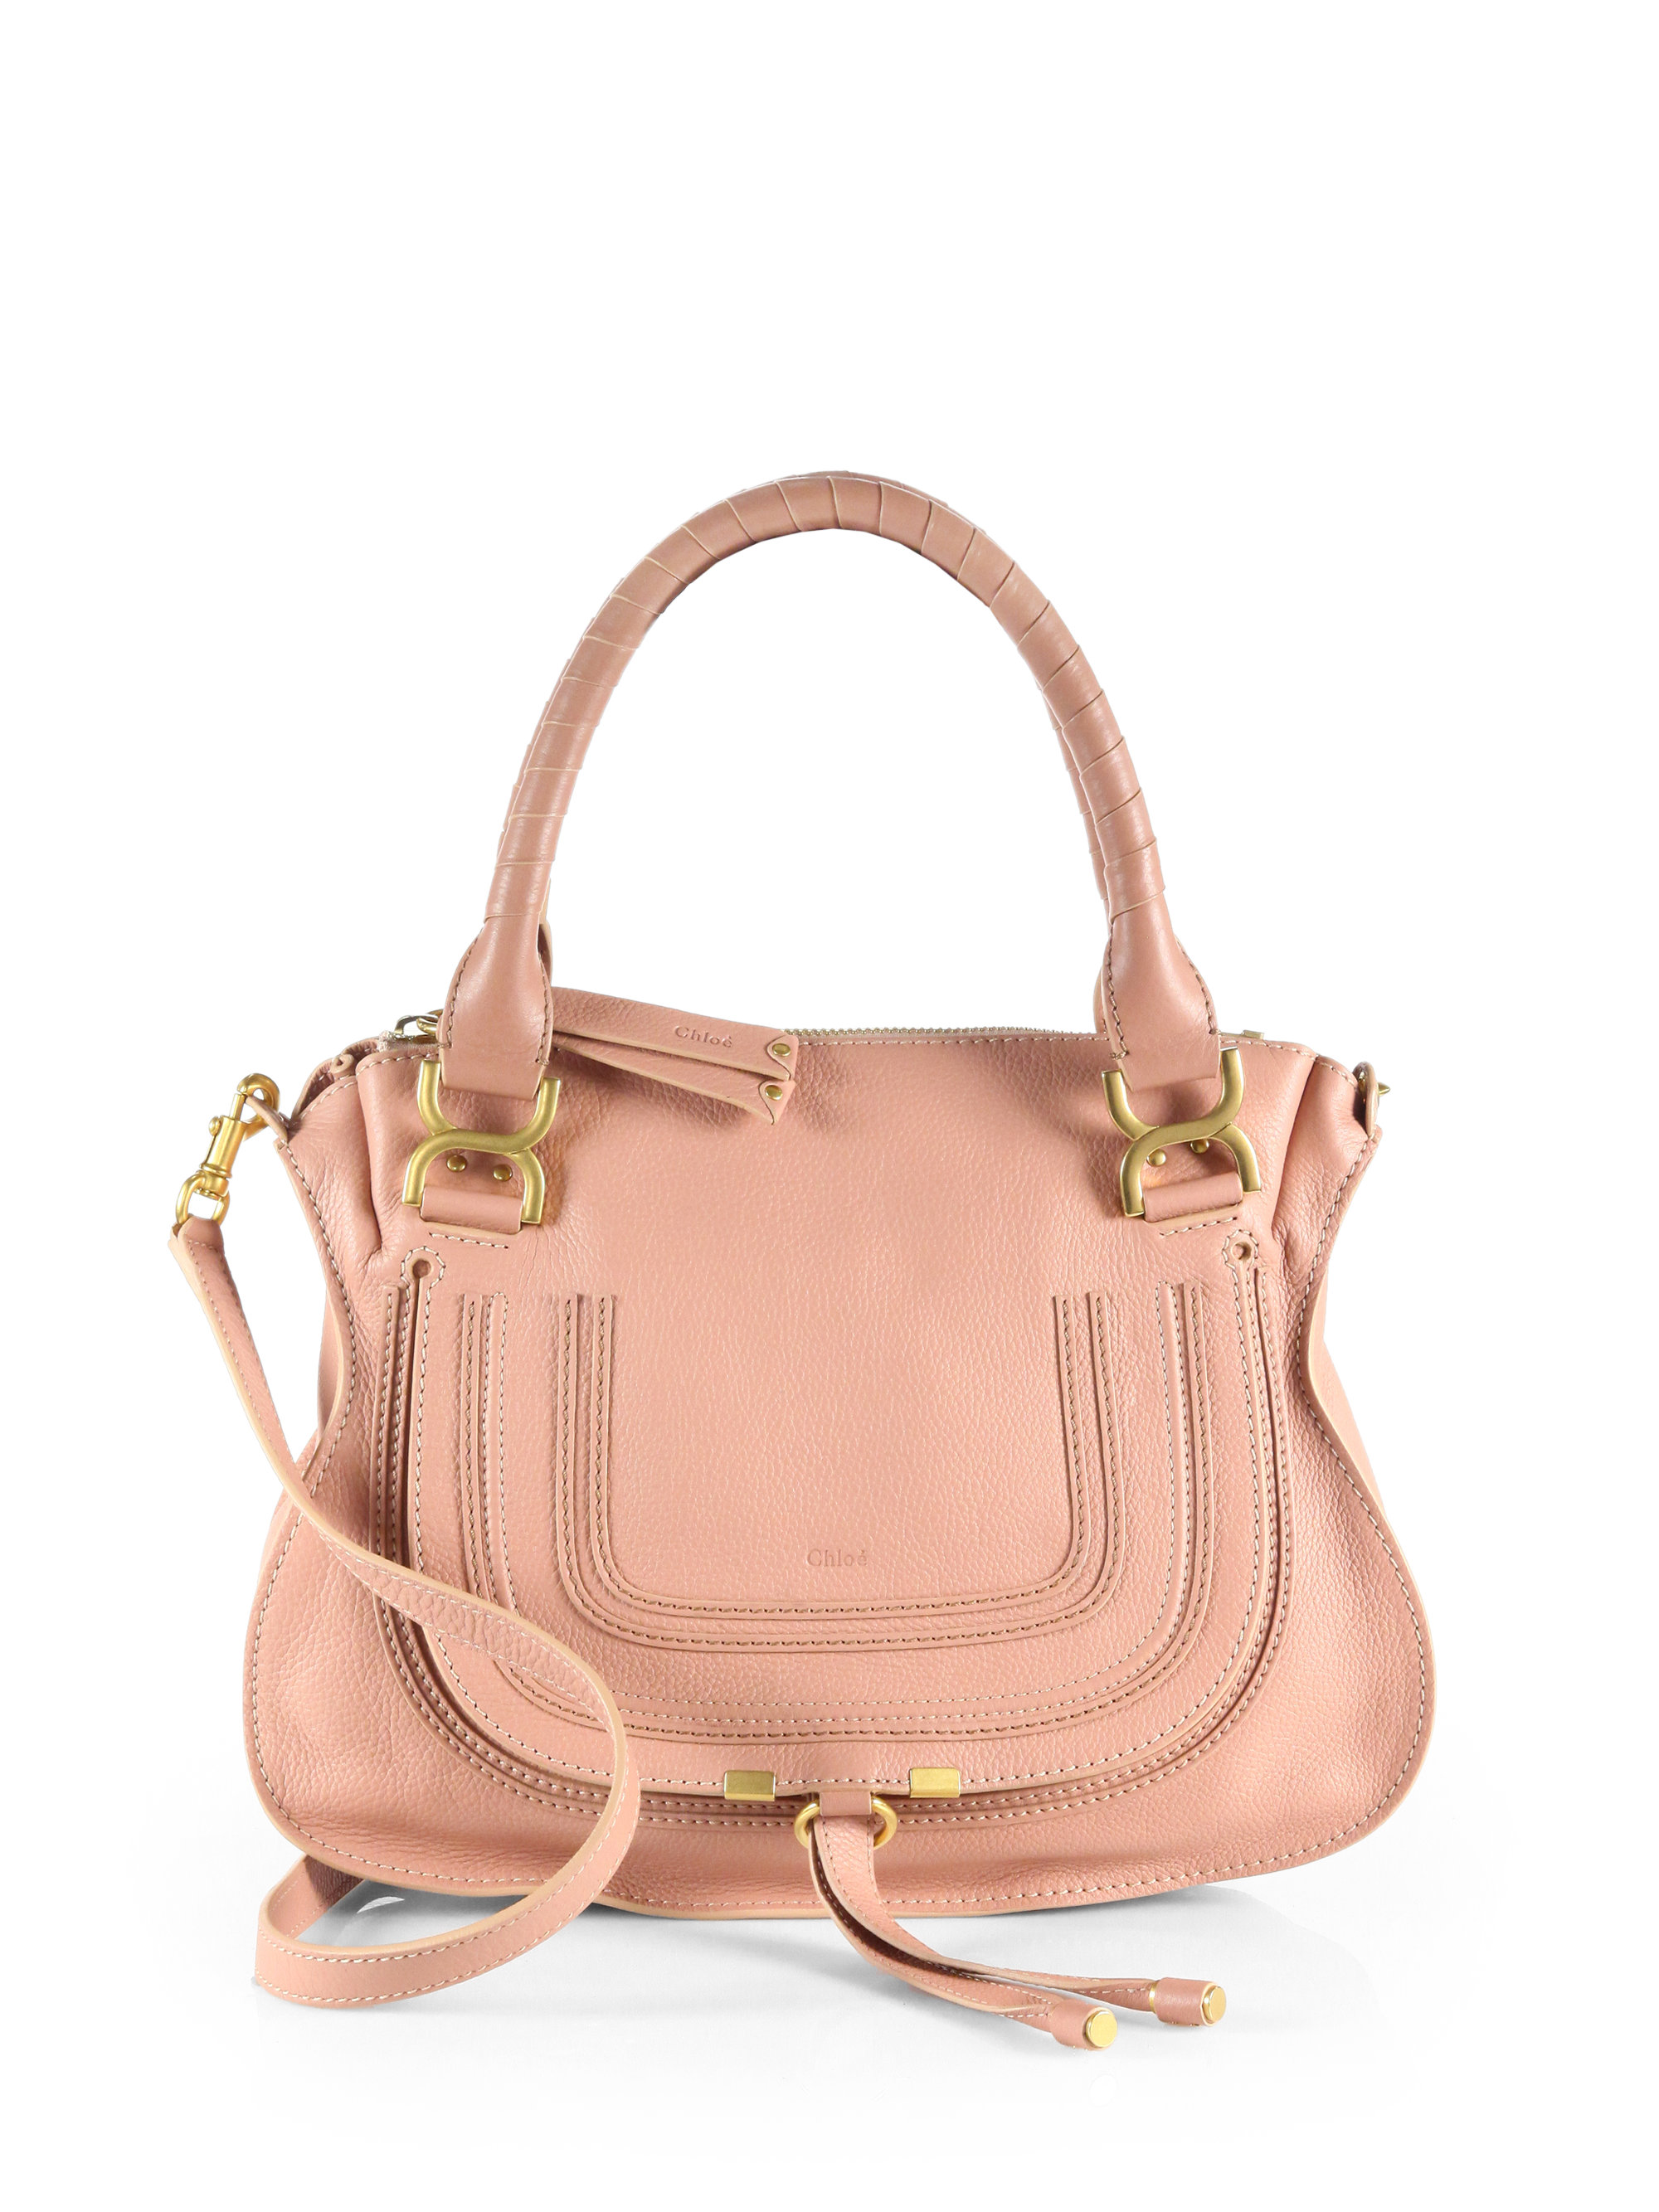 chlo marcie medium leather satchel in pink lyst. Black Bedroom Furniture Sets. Home Design Ideas